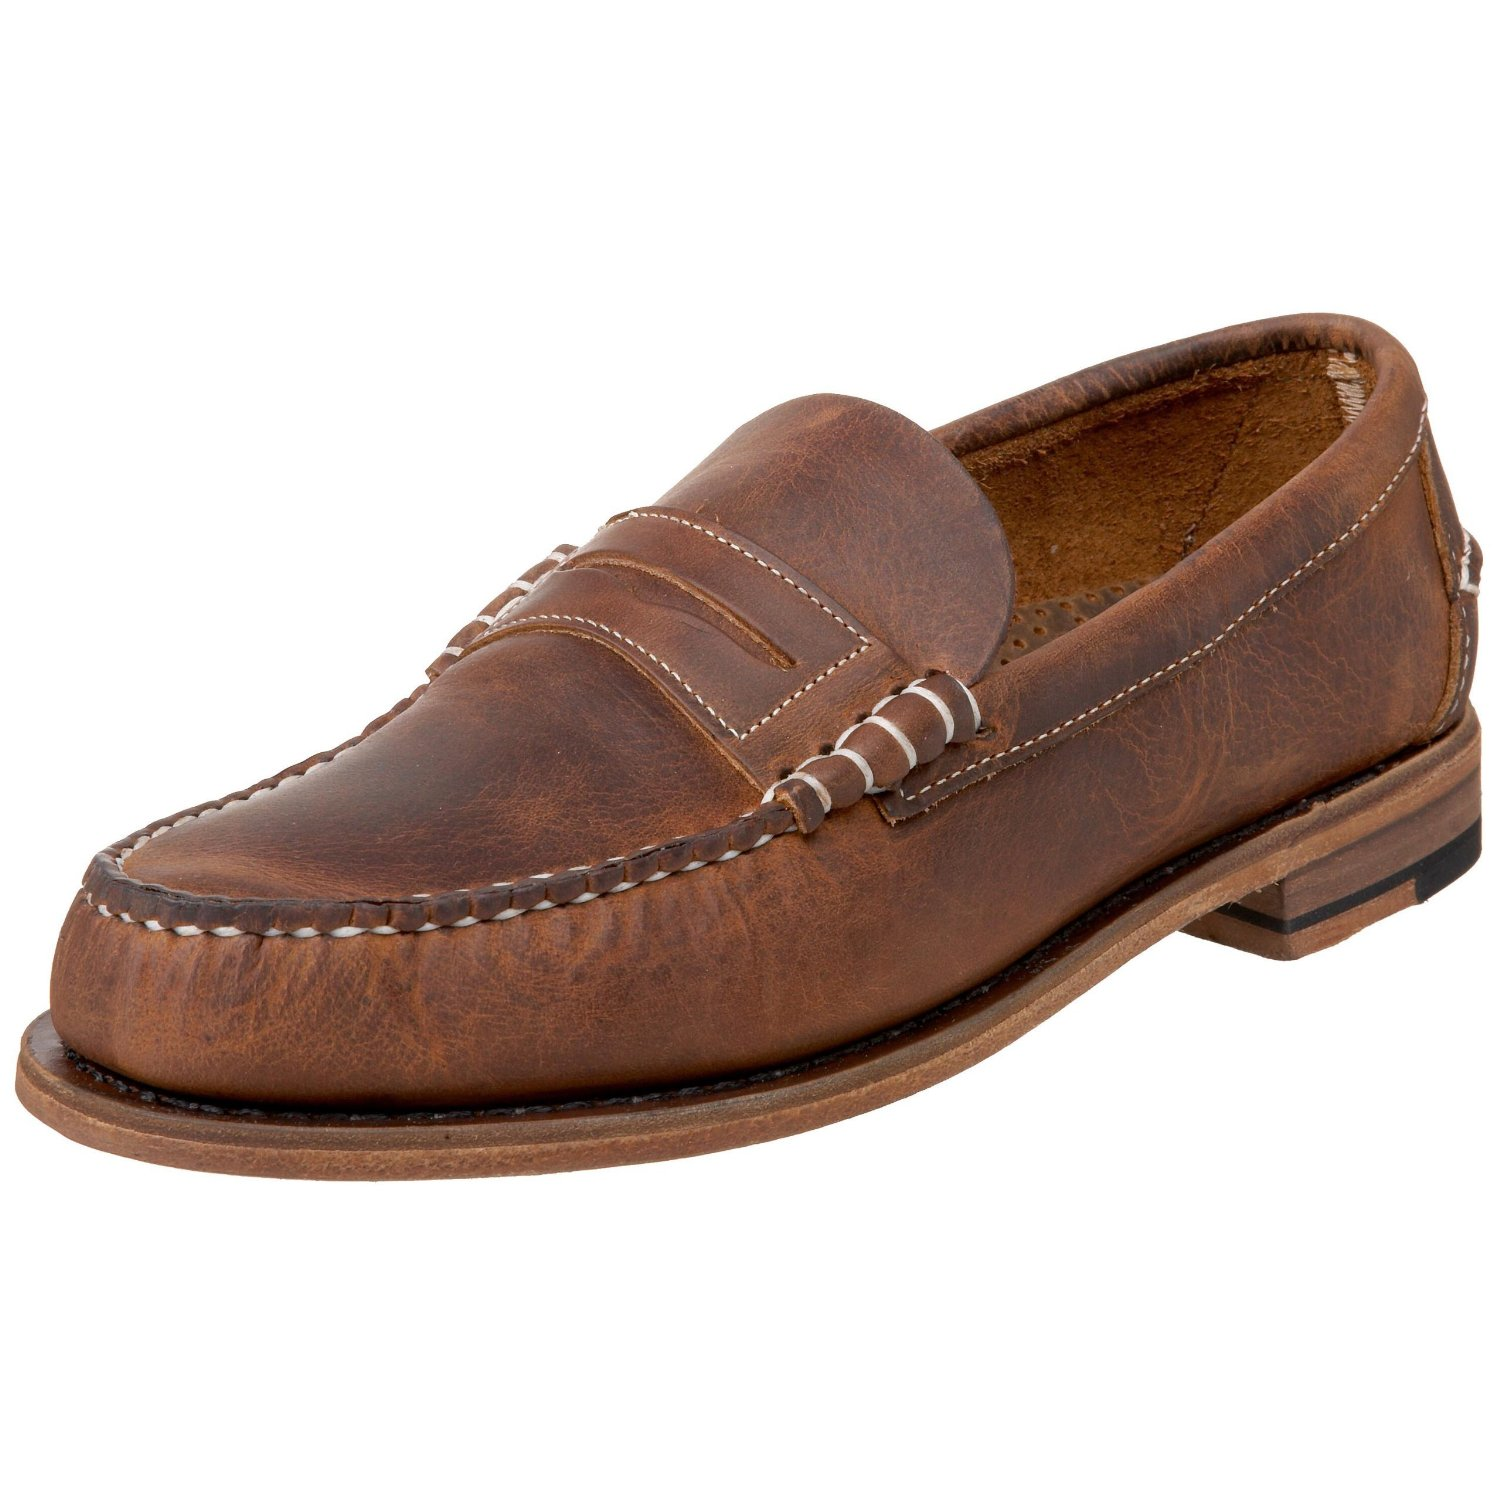 leather shoes for mens: Sebago Men's Classic Leather Loafer